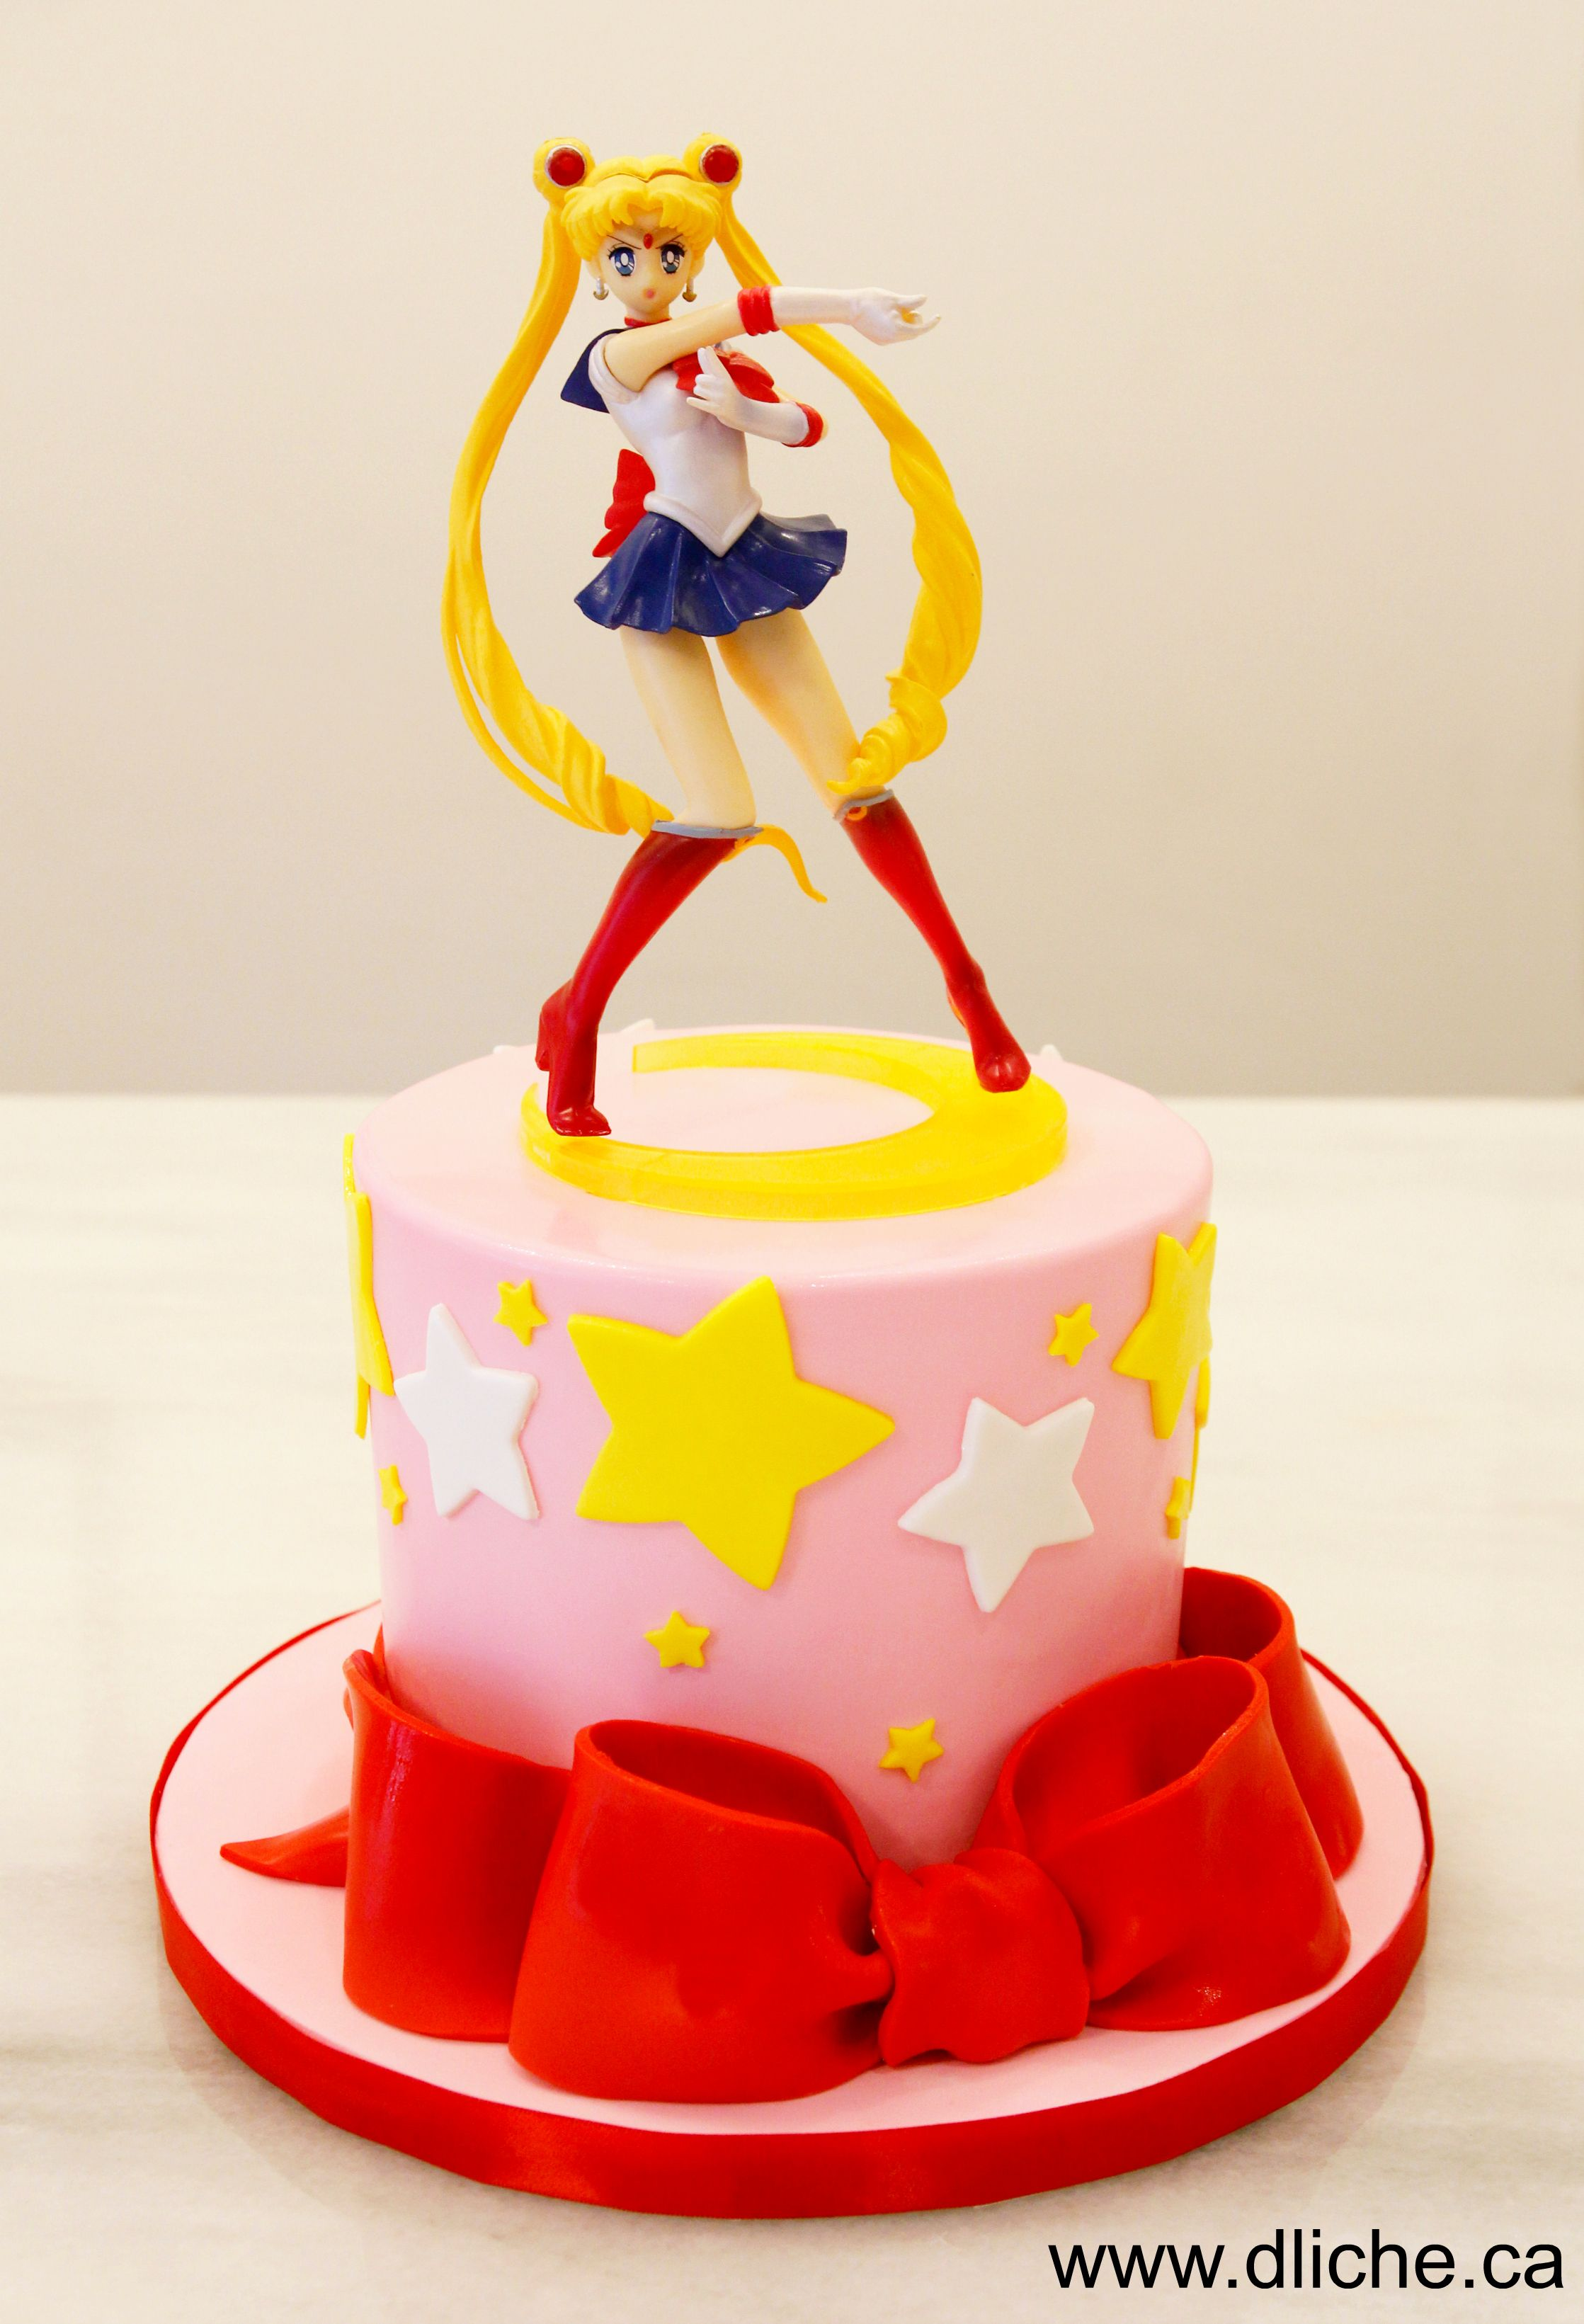 Gateau Sailor Moon Sailor Moon Cake With Images Sailor Moon